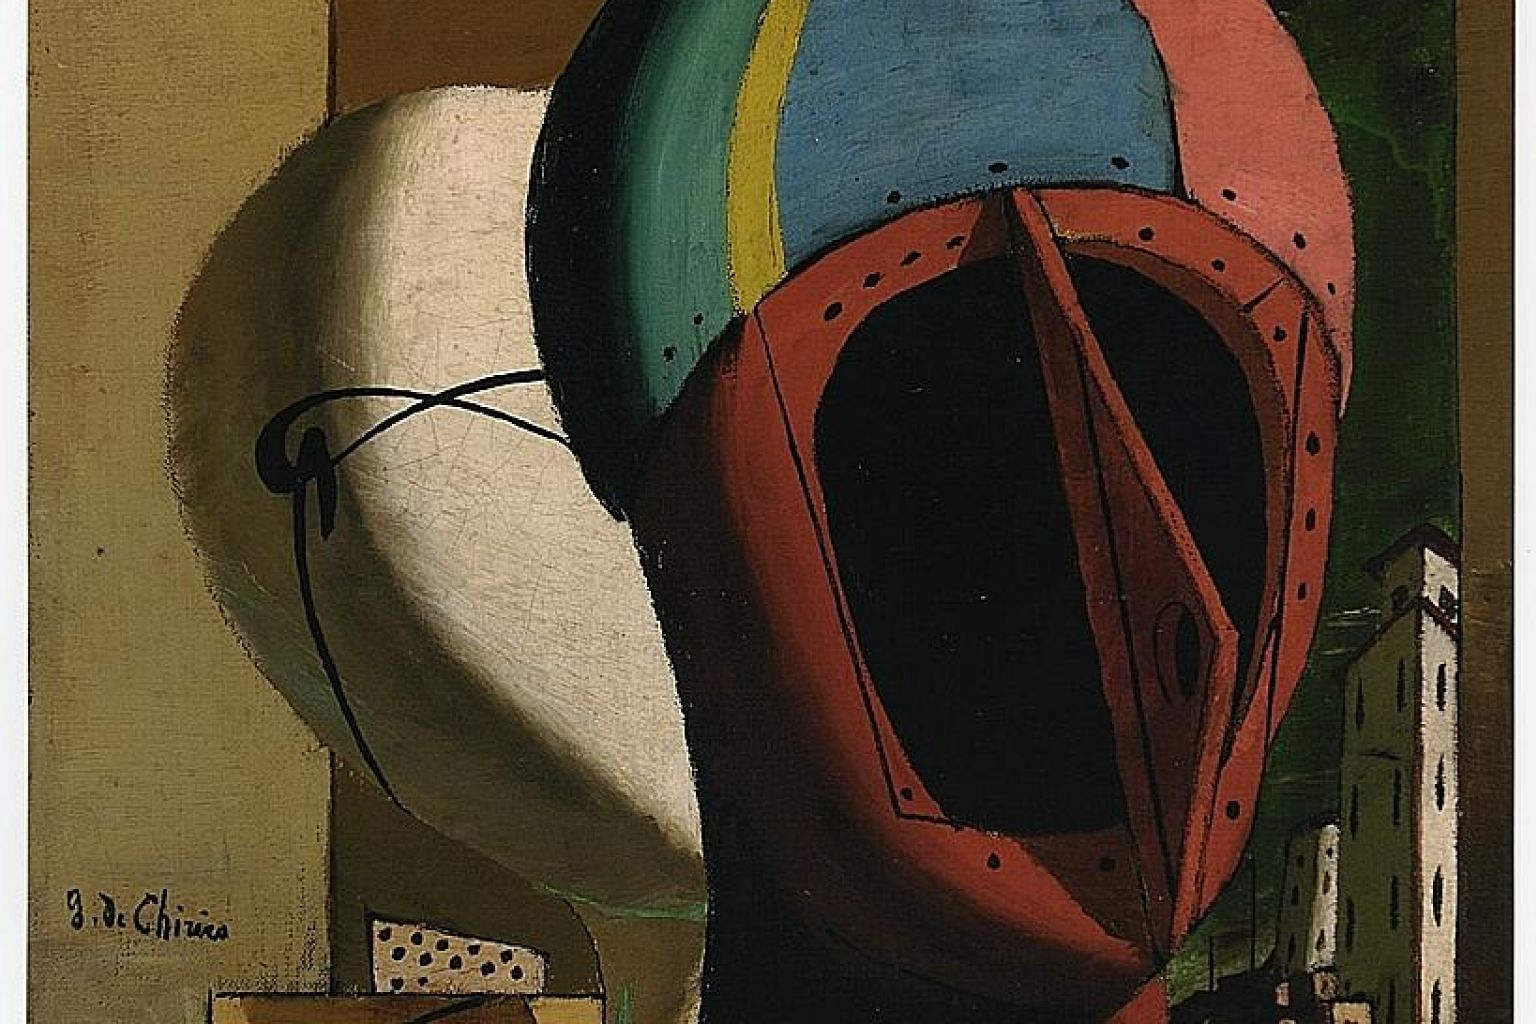 This work by artist Giorgio de Chirico is part of the private collection of entrepreneur Francesco Federico Cerruti, who died in 2015.